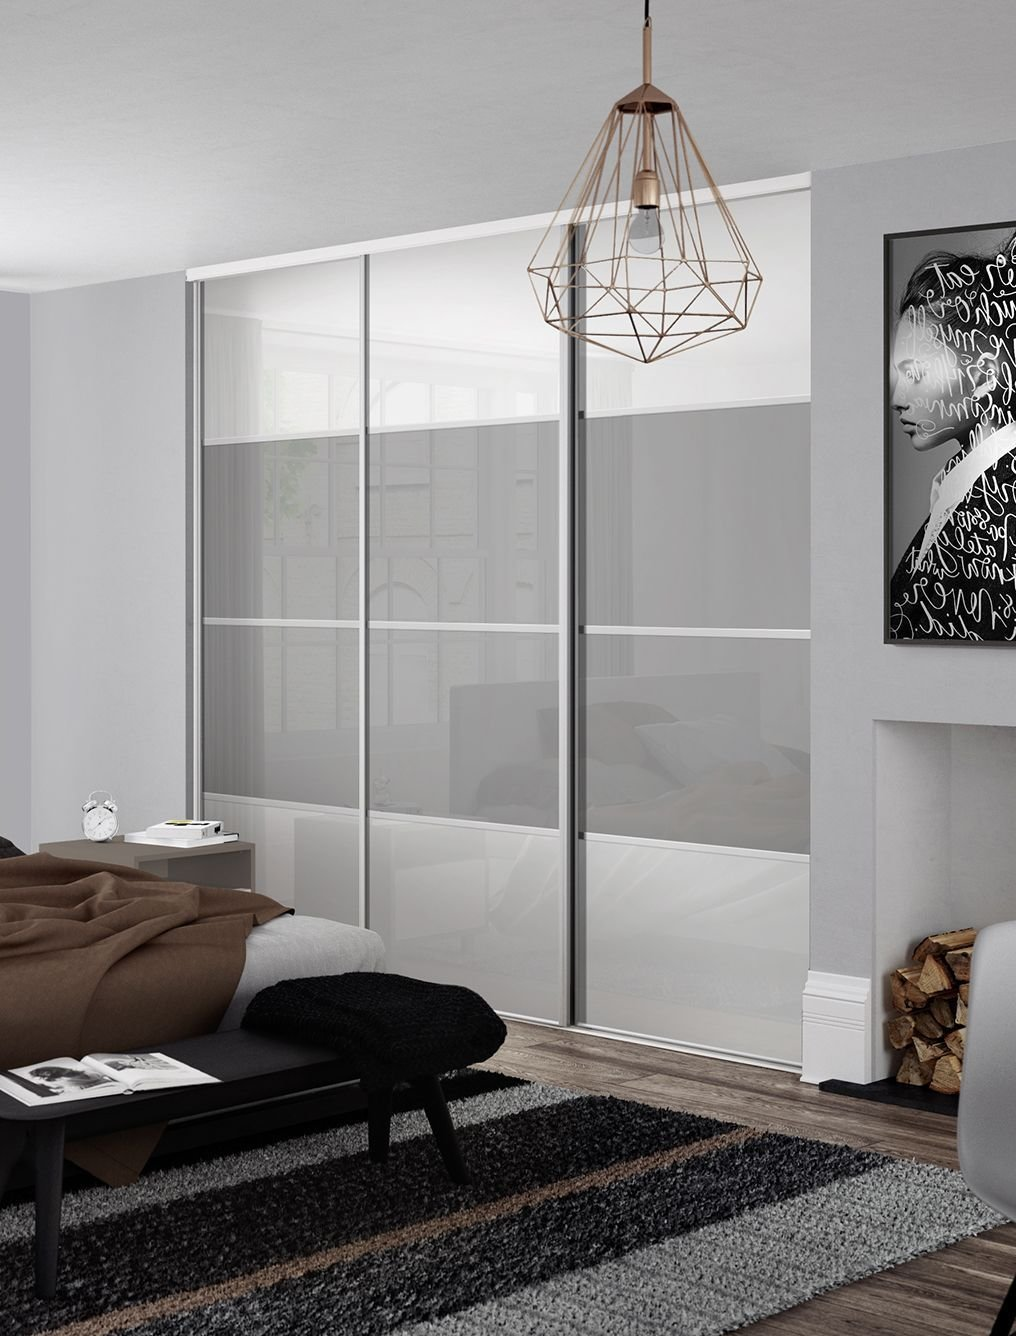 Best Classic 4 Panel Sliding Wardrobe Doors In Pure White And With Pictures